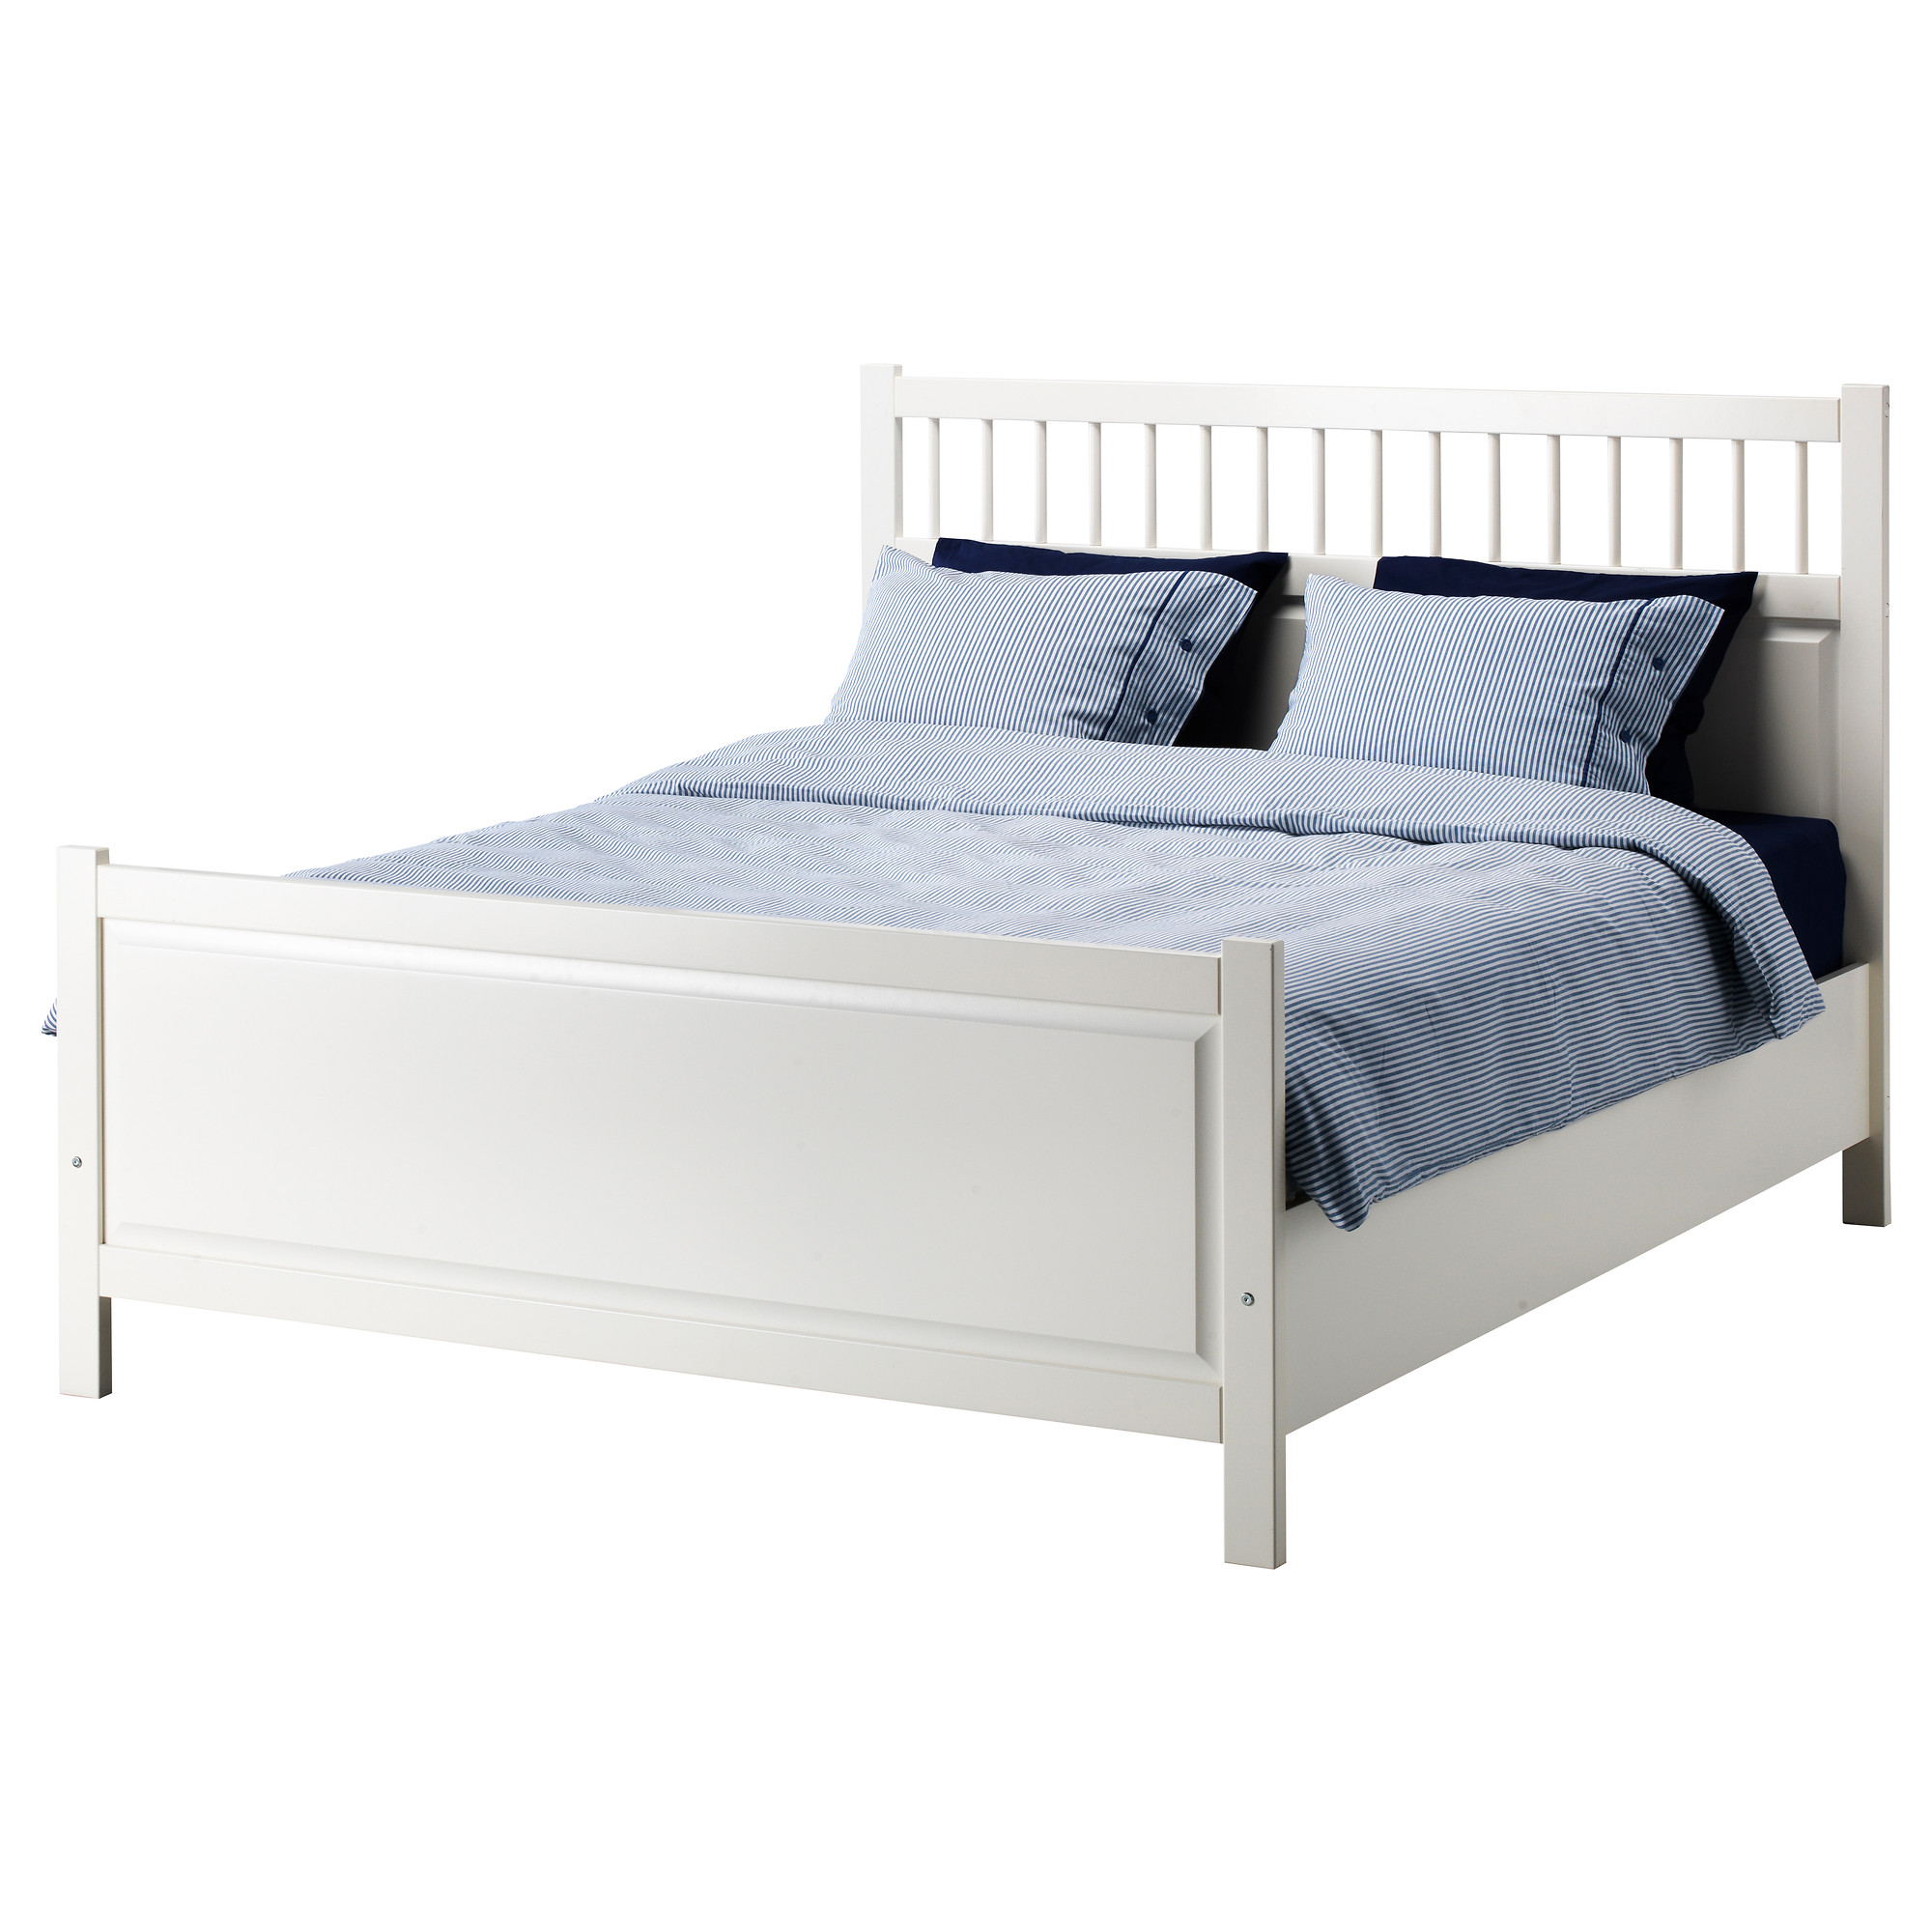 Ikea twin bed frames homesfeed for Ikea mattress frame